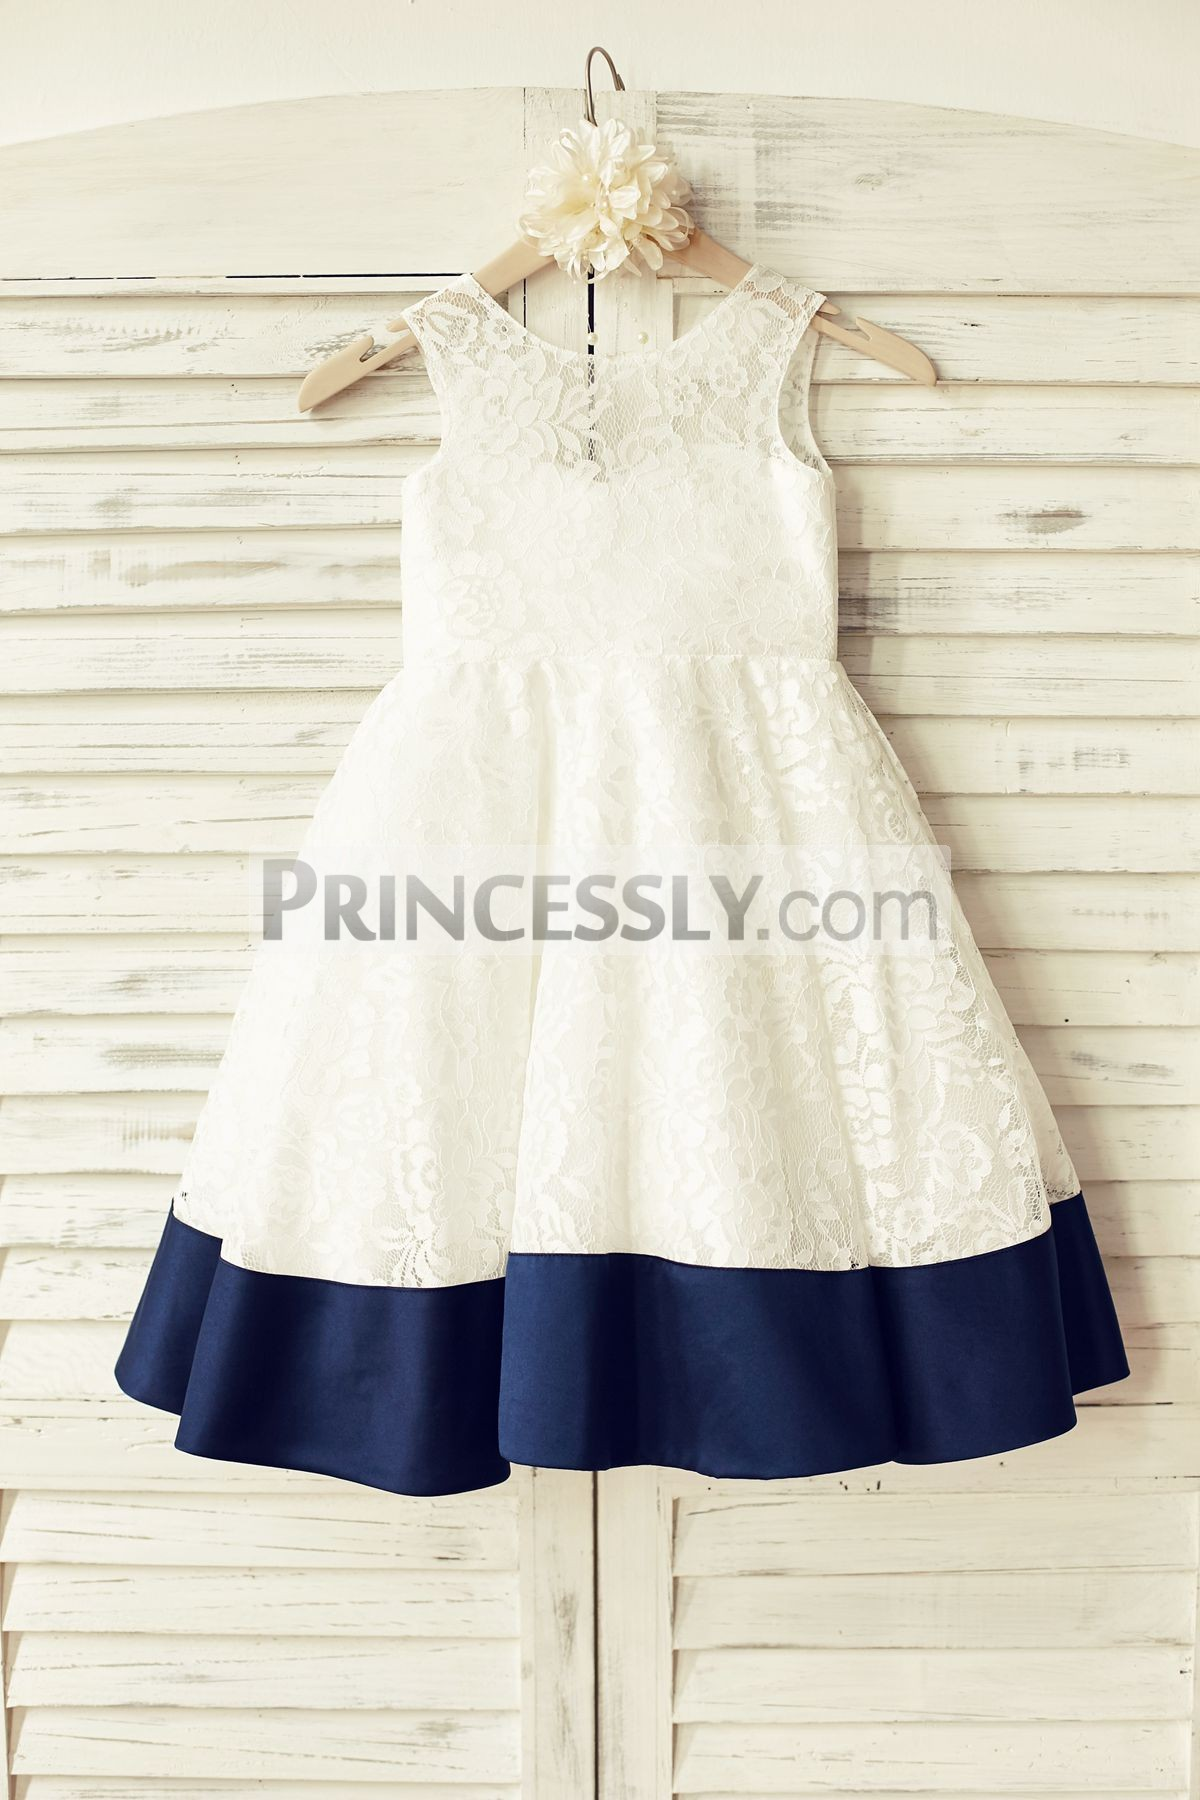 Masterly Ivory Floral Lace Deep V Back Big Bow Flower Girl Dress Sleeveless Deep V Back Ivory Lace Flower Girl Dress Navy Blue Ivory Flower Girl Dresses Etsy Ivory Flower Girl Dresses Uk wedding dress Ivory Flower Girl Dresses